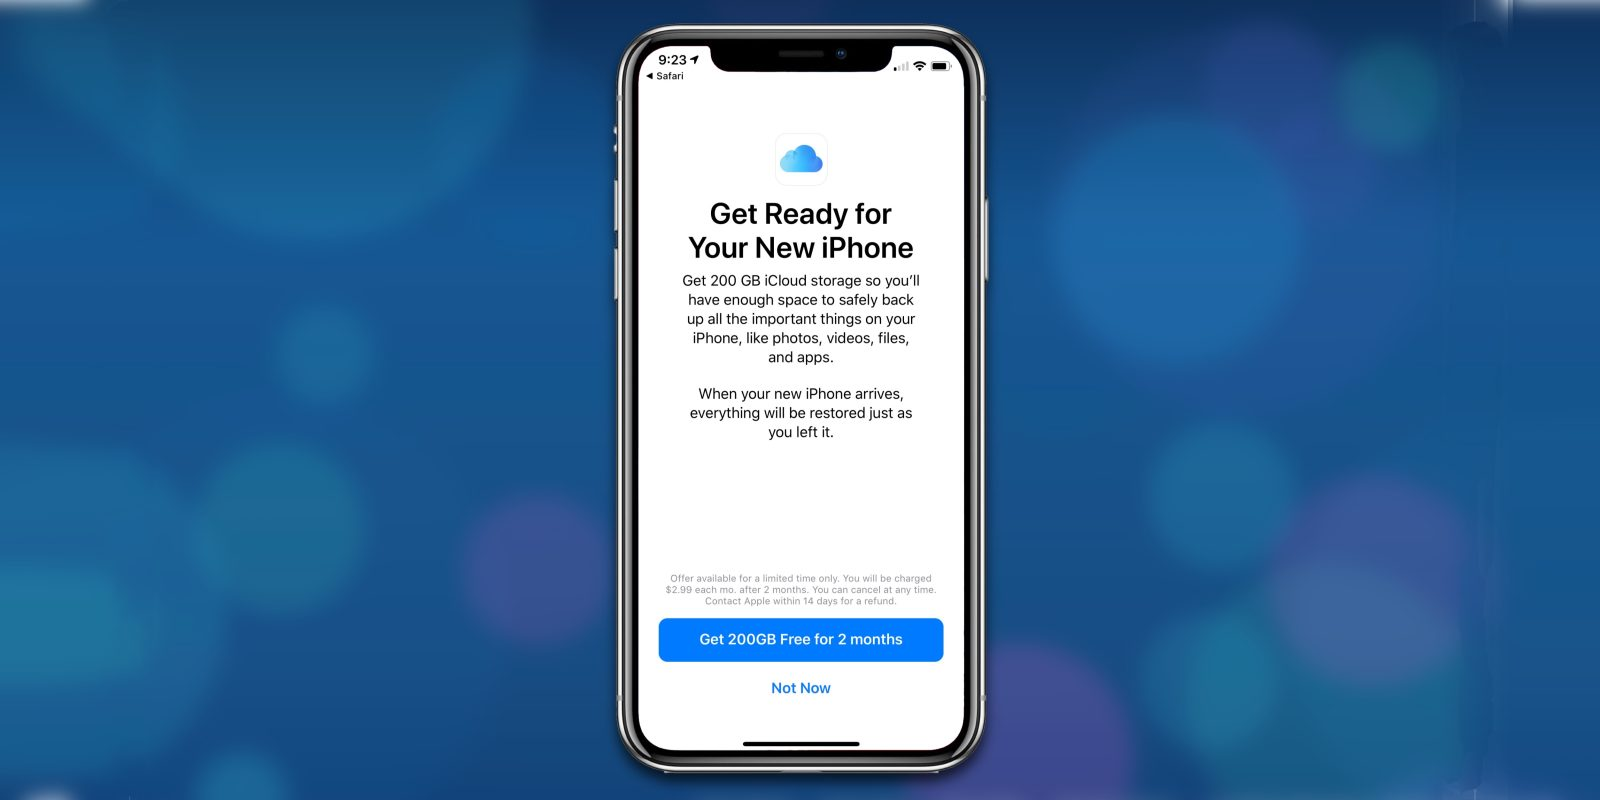 Apple partners with US carriers to offer 2 free months of